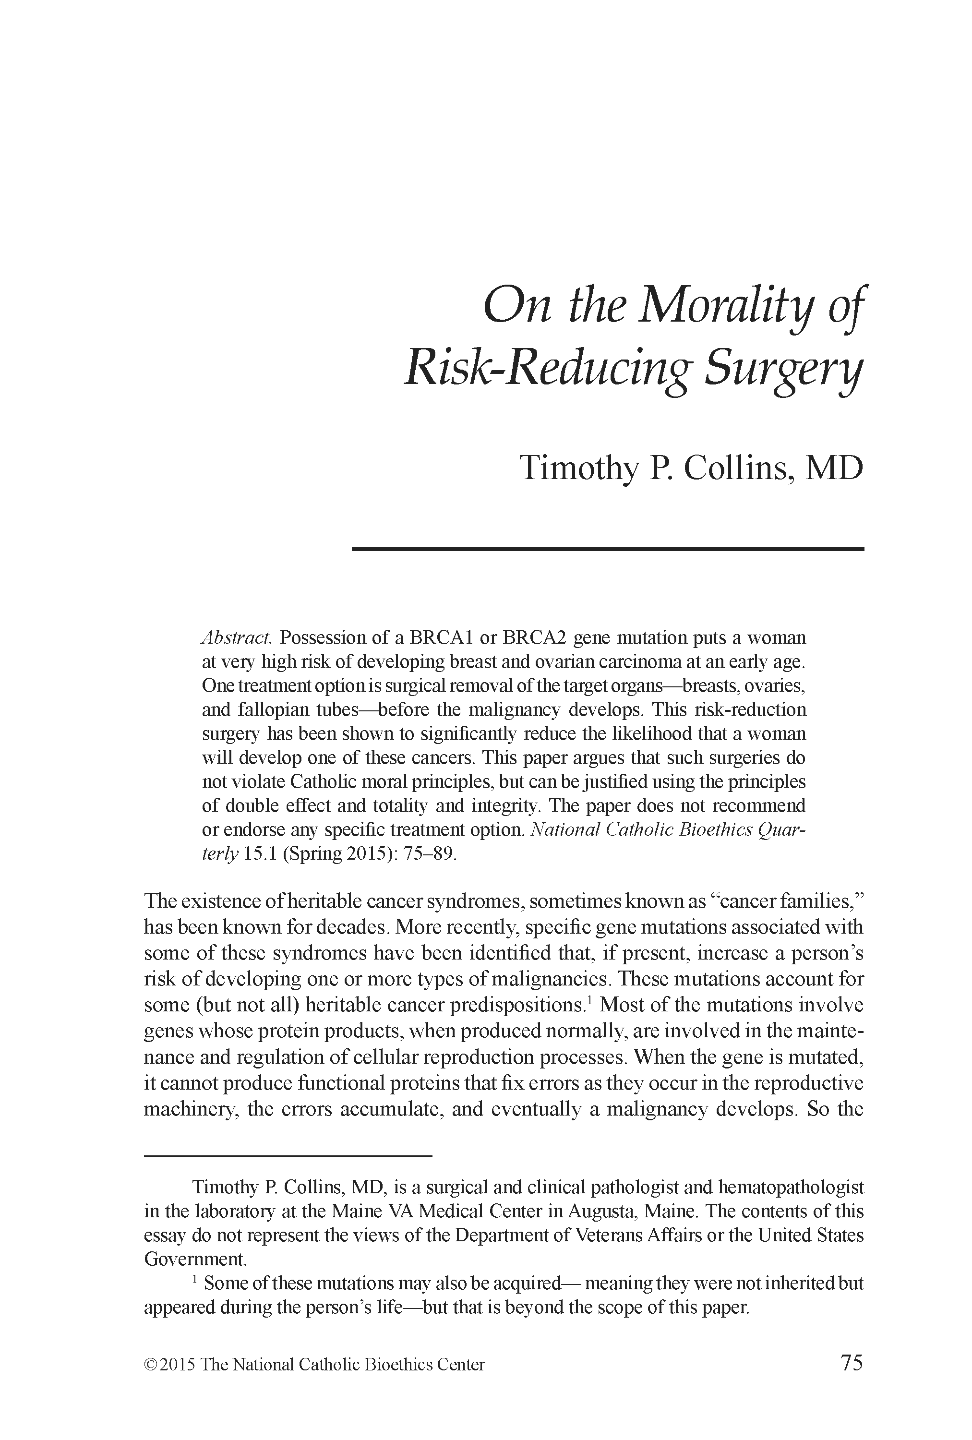 on the morality of risk reducing surgery timothy p collins md document is being loaded